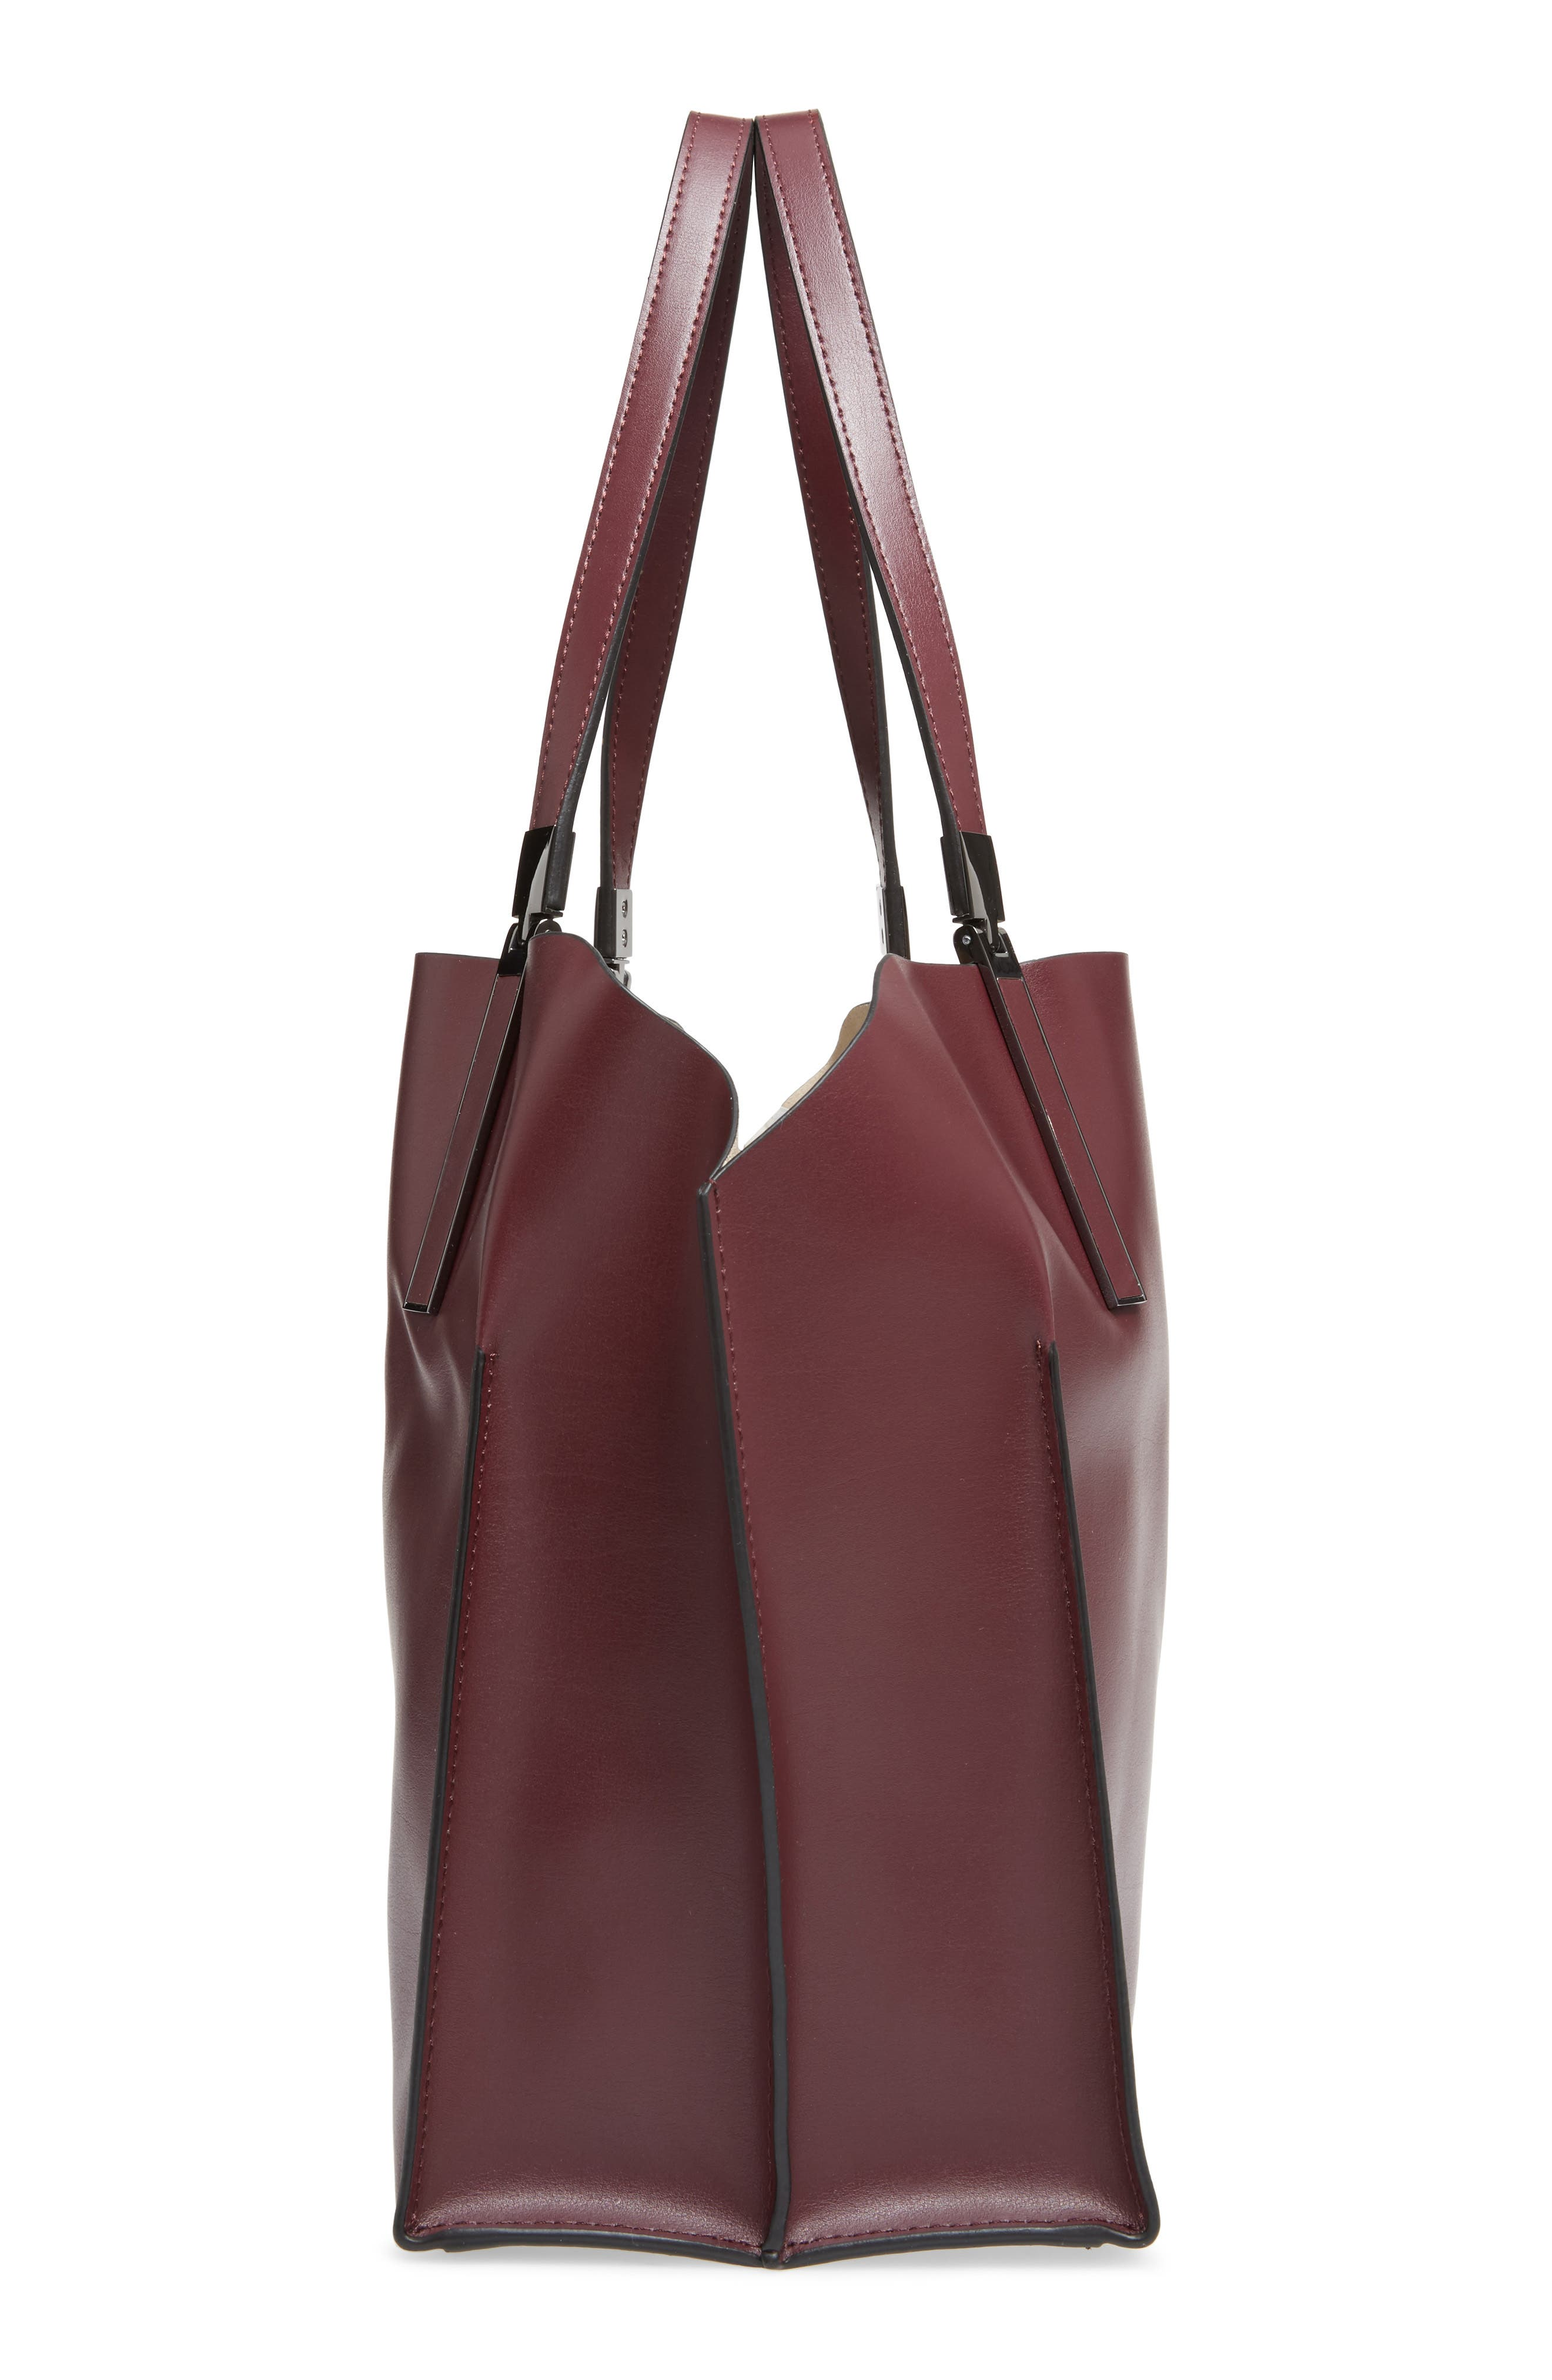 LODIS Silicon Valley Collection Under Lock & Key - Anita RFID East/West Leather Satchel,                             Alternate thumbnail 5, color,                             Chianti/ Taupe